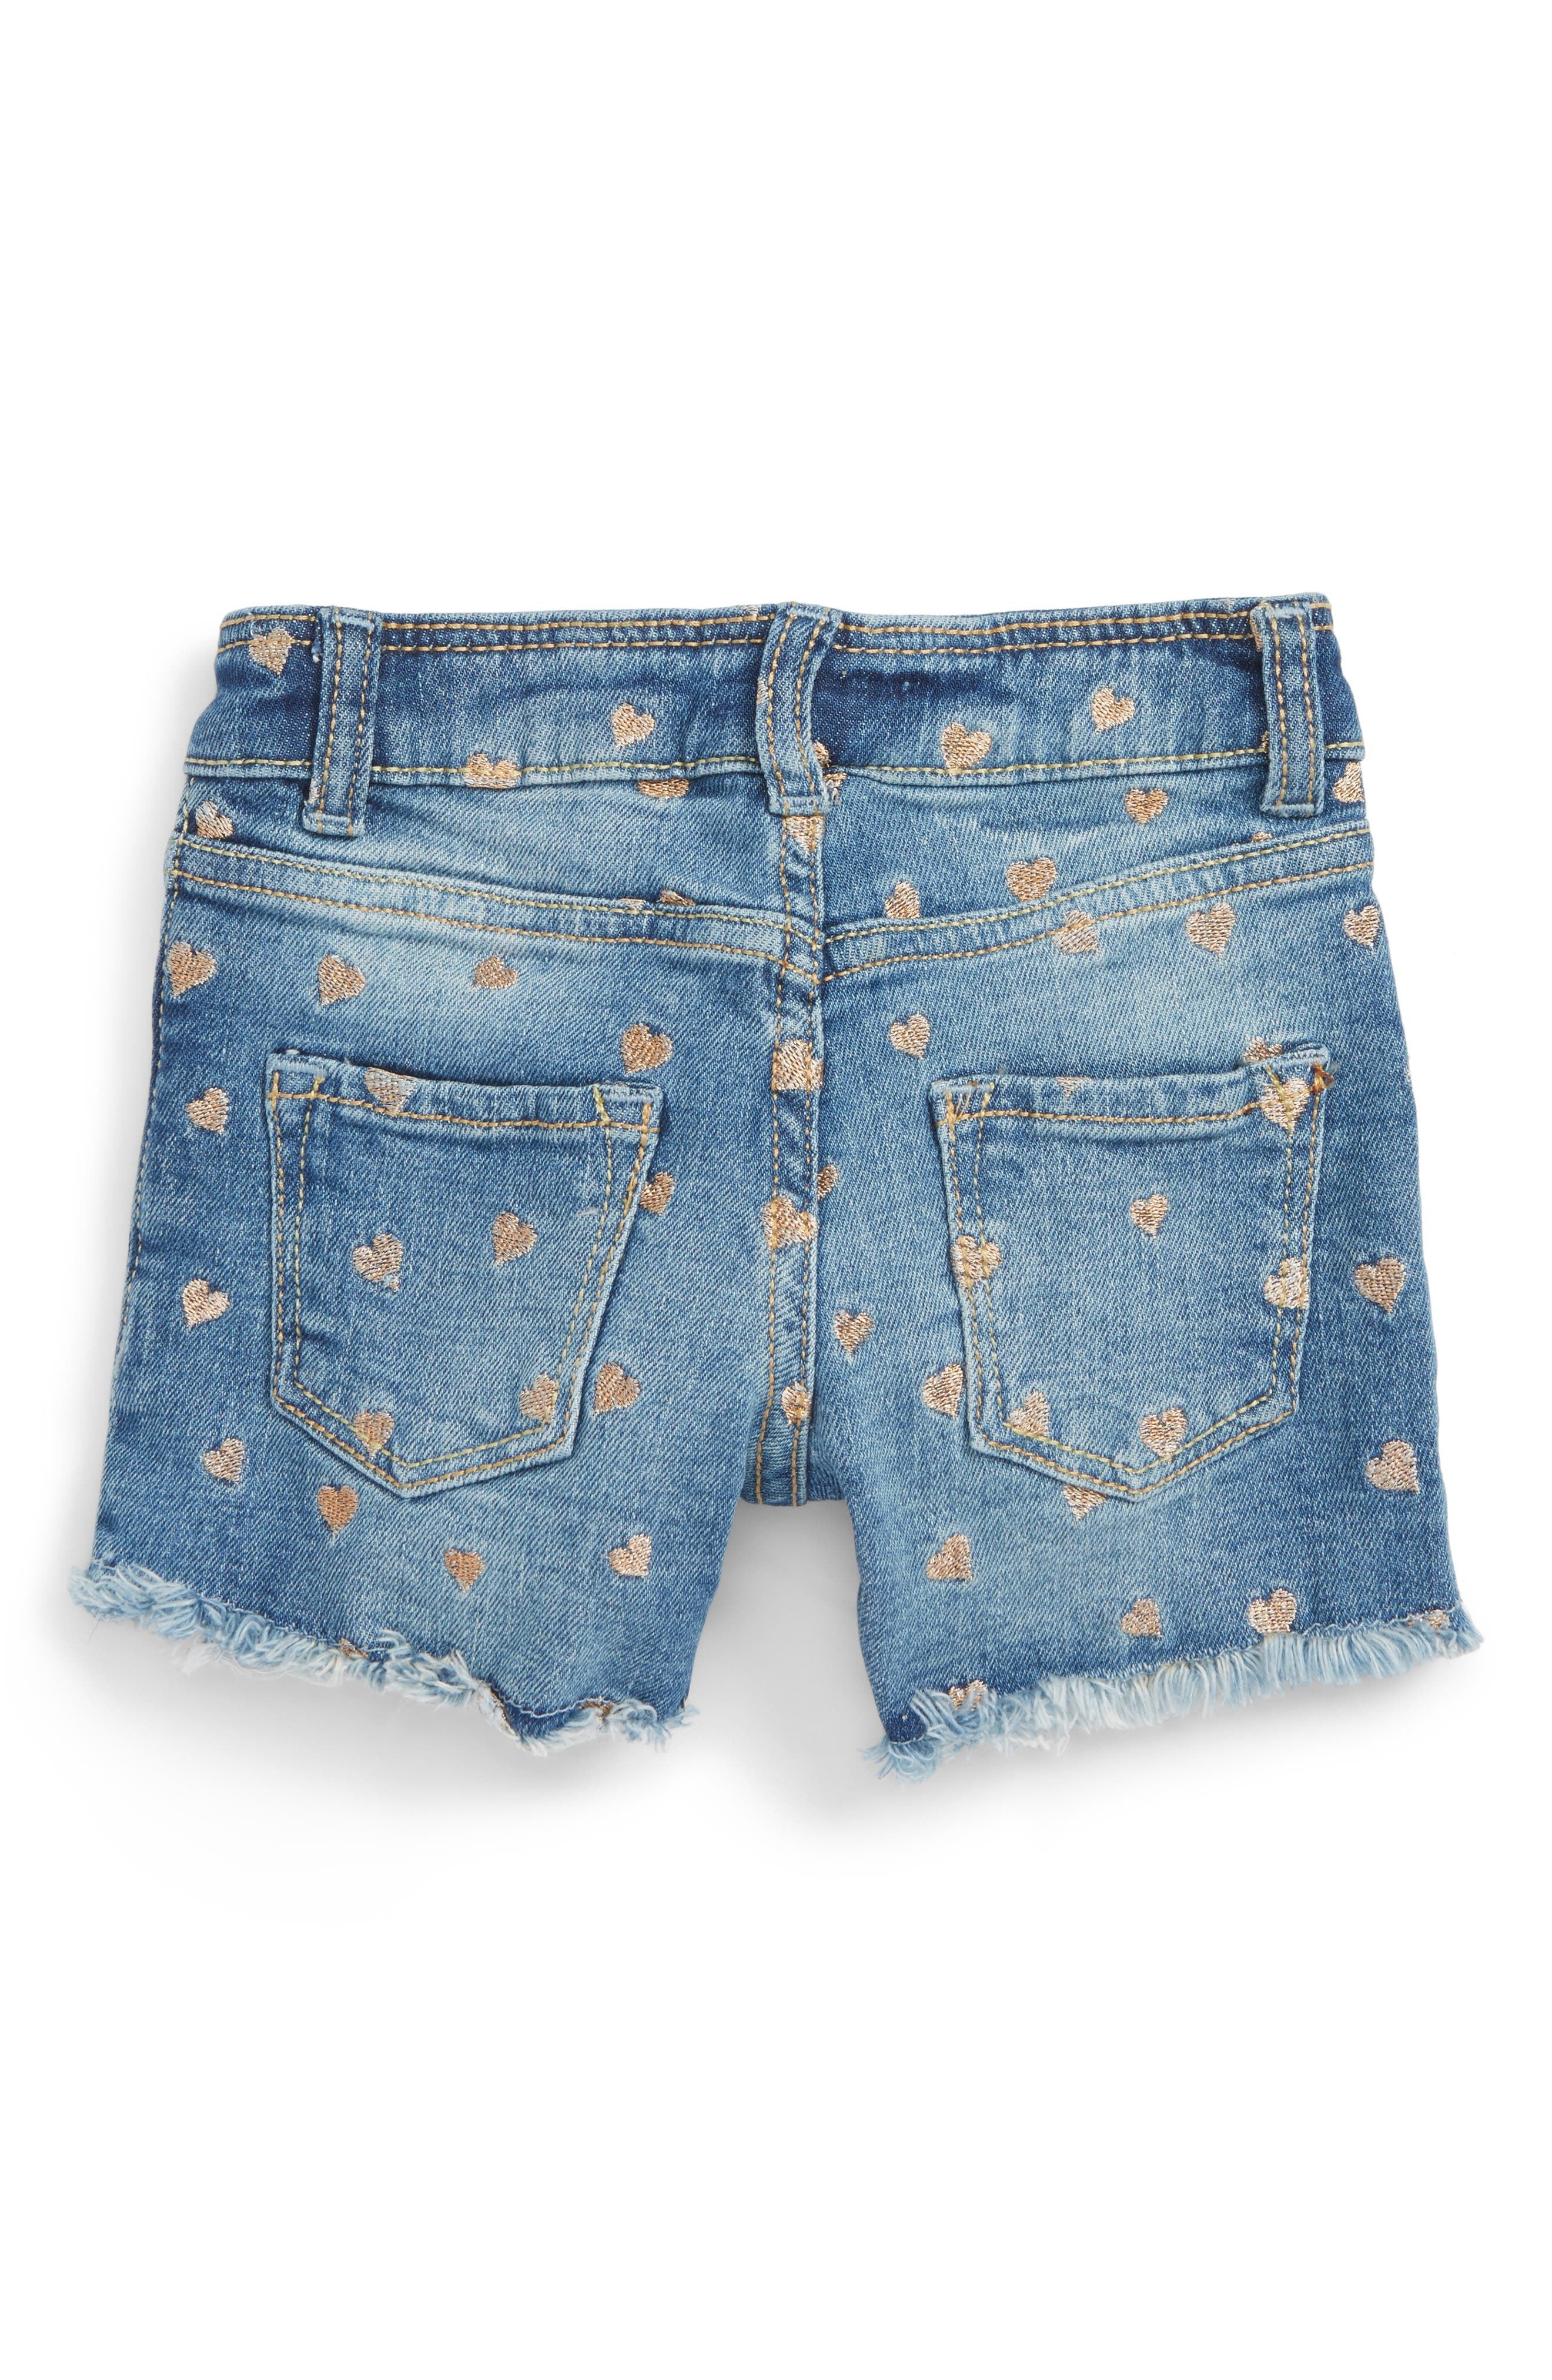 Mini Heart Cutoff Denim Shorts,                         Main,                         color,